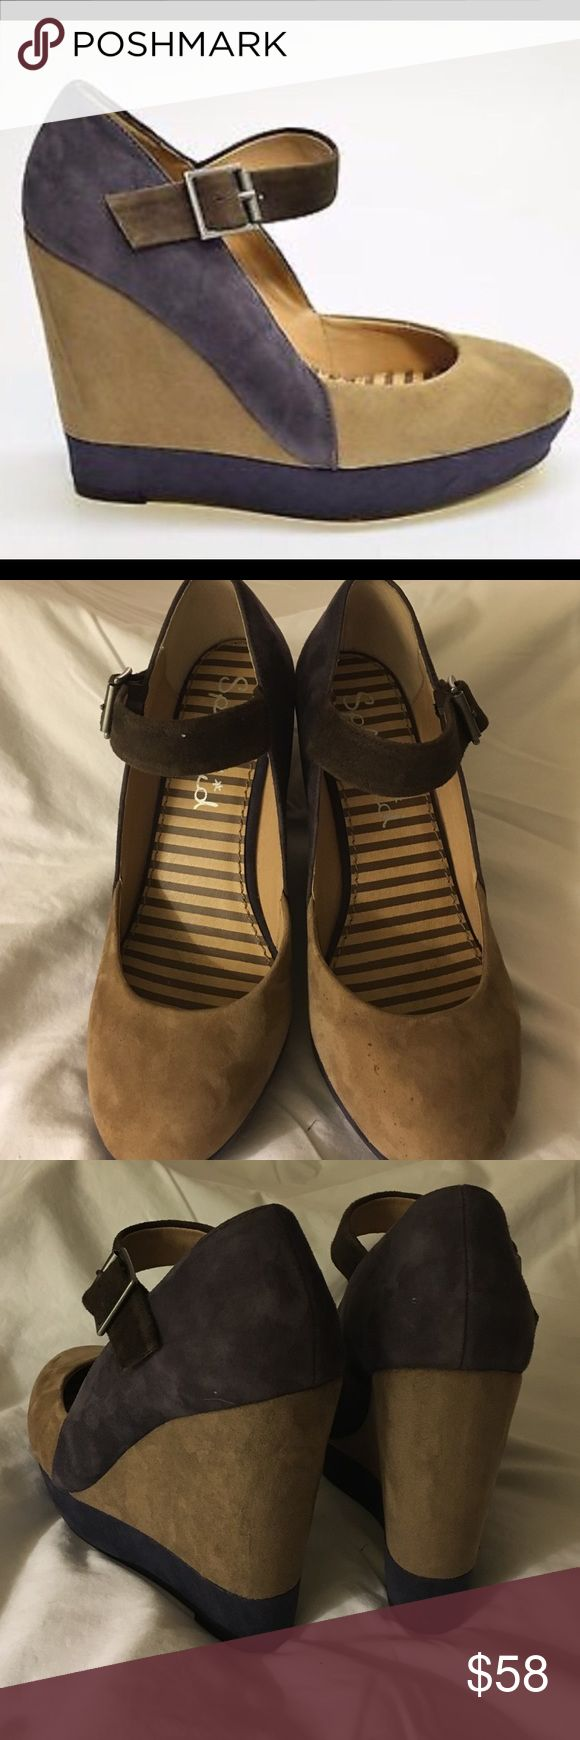 """Splendid Suede Wedges Gorgeous 3 color 4 1/2"""" heeled wedges. Color is tan and plum with chocolate brown strap. In EUC only flaw is tiny speckle on left front toe, see image. Splendid Shoes Wedges"""